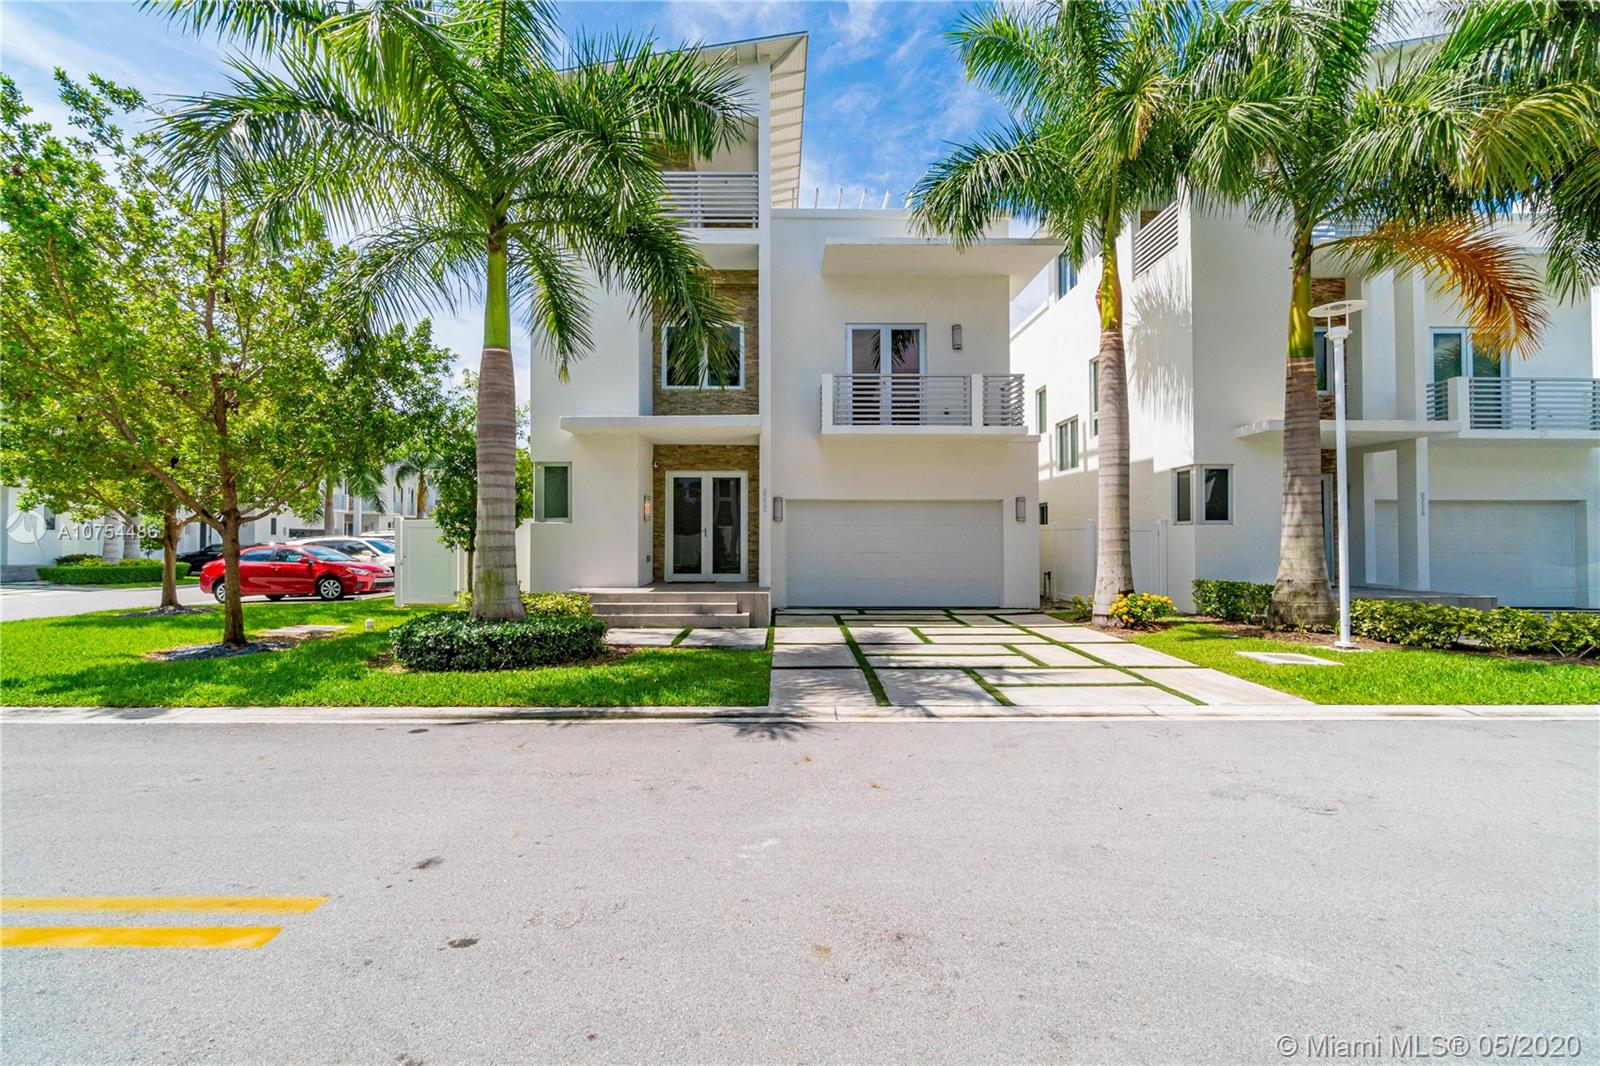 One of Doral 4 Bedroom Homes for Sale at 8220 NW 34th St